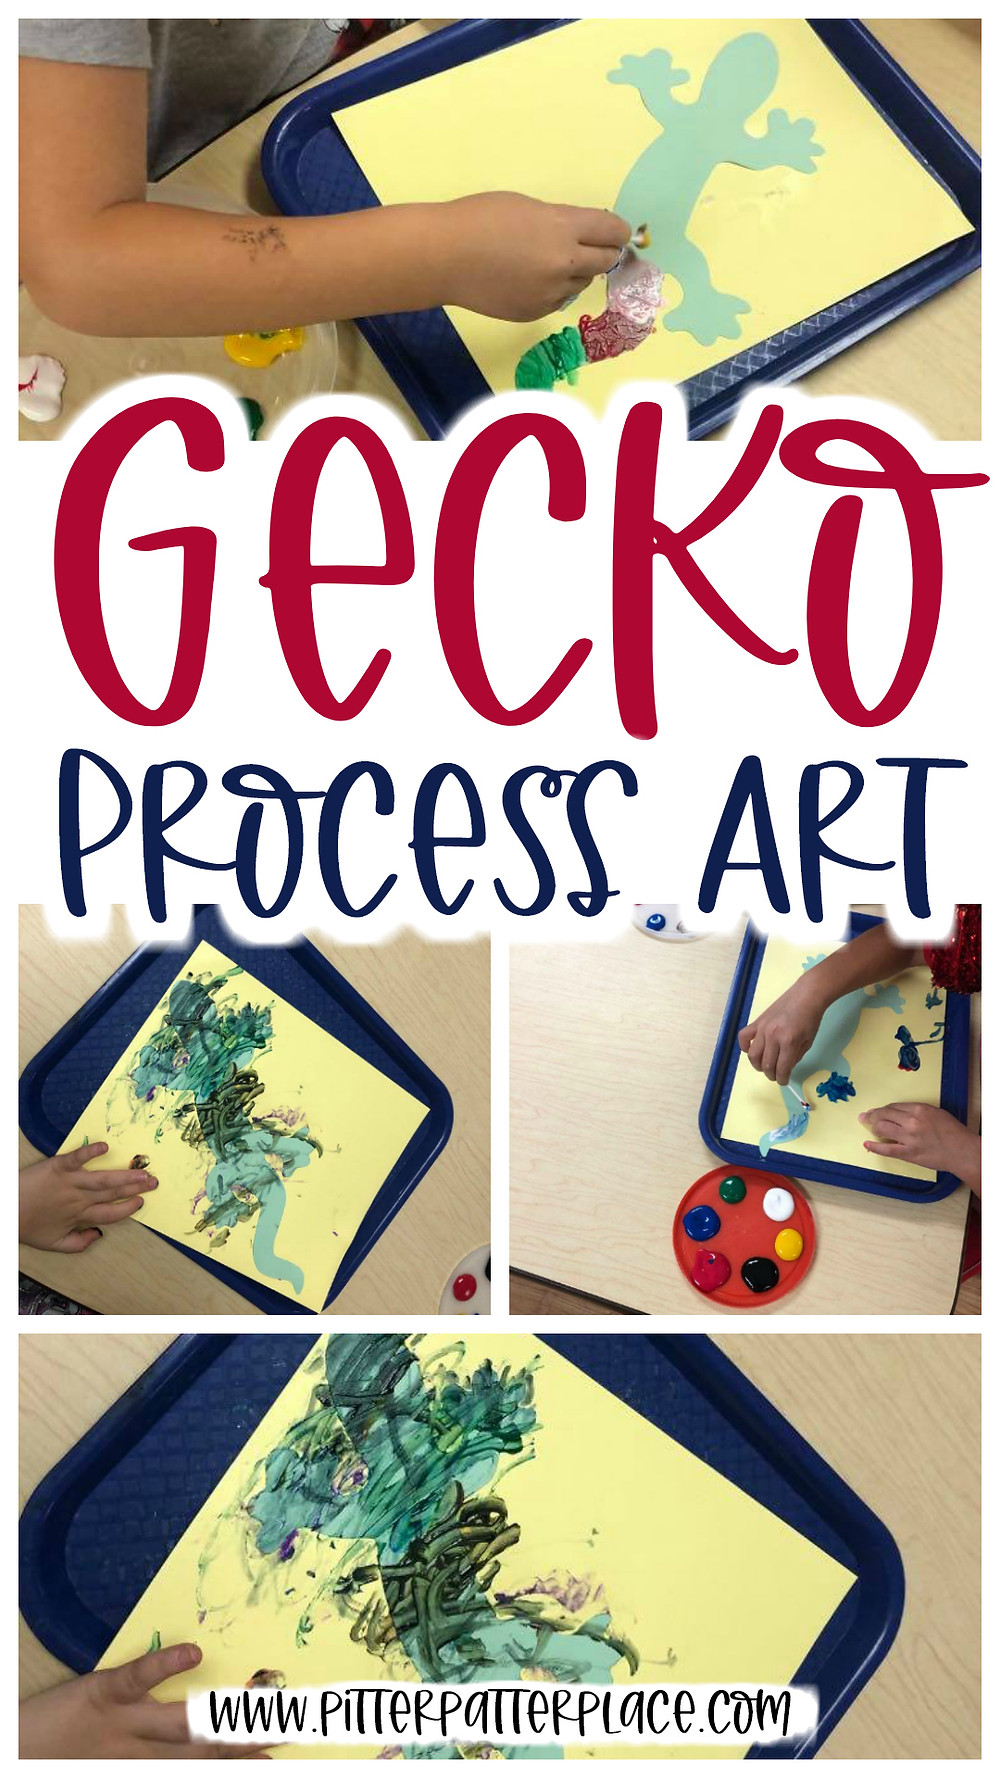 collage of dot art images with text: Gecko Process Art